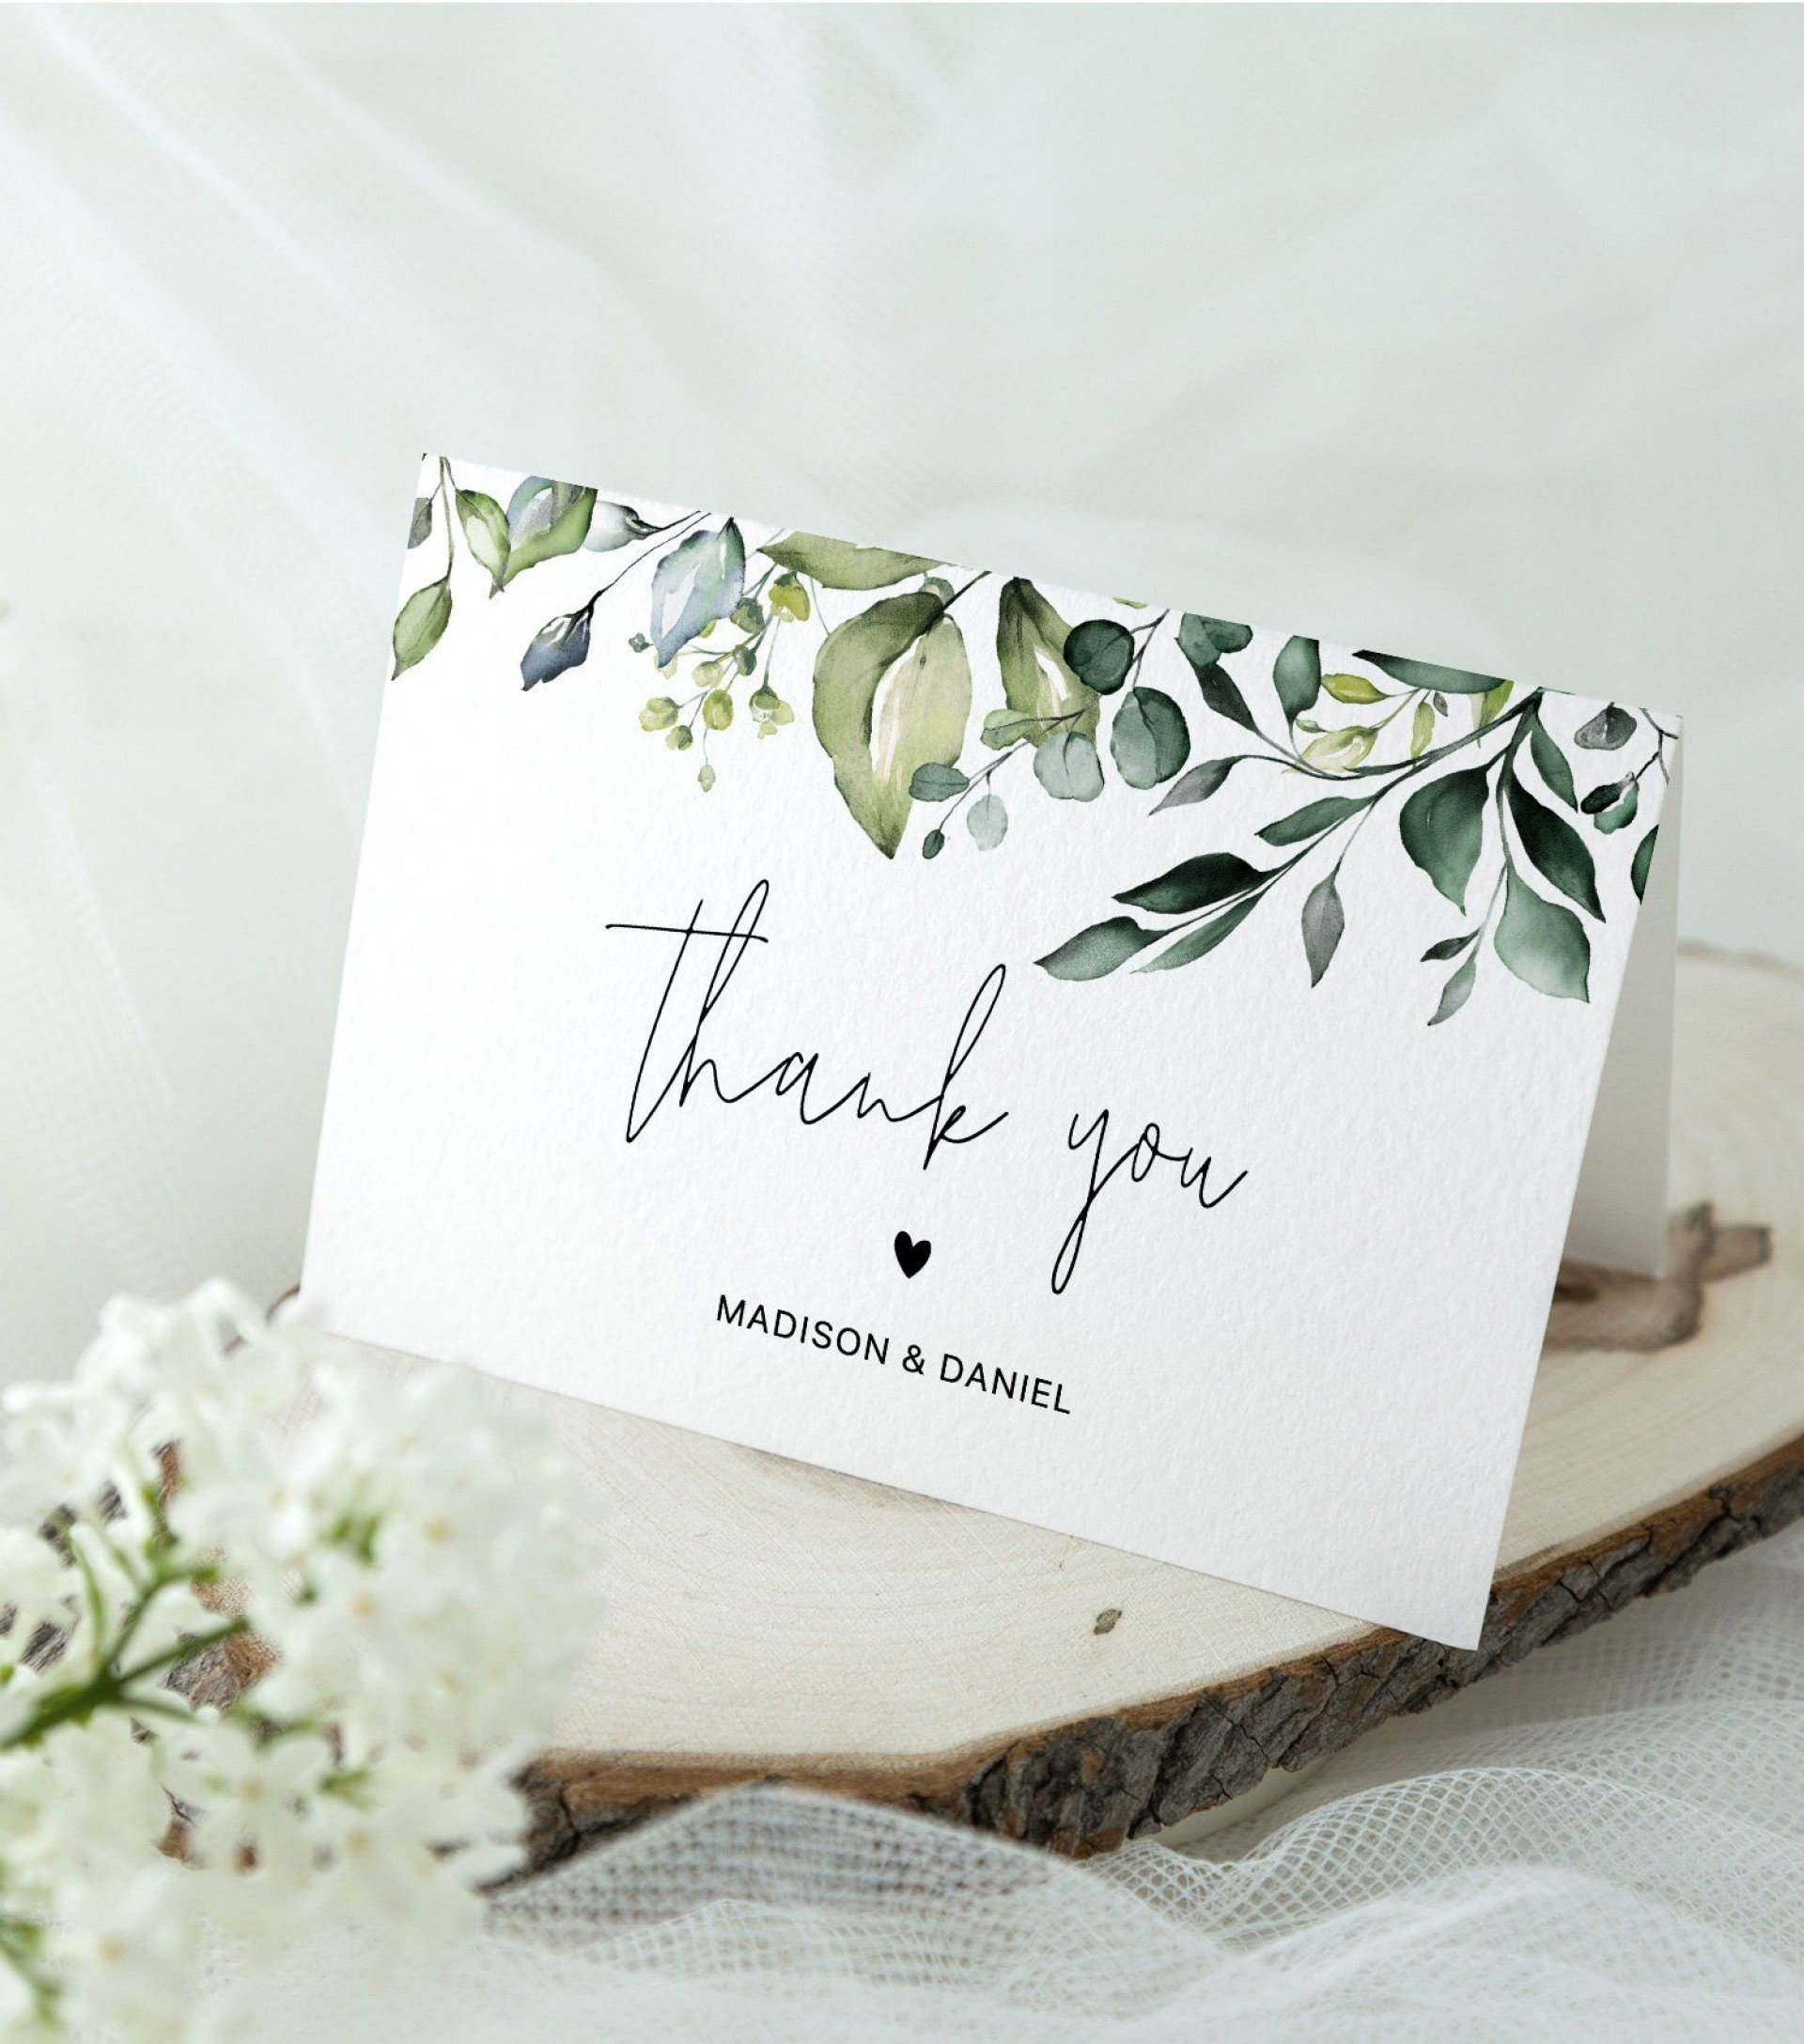 002 Fascinating Thank You Card Template Wedding Inspiration  Free Printable Publisher1920